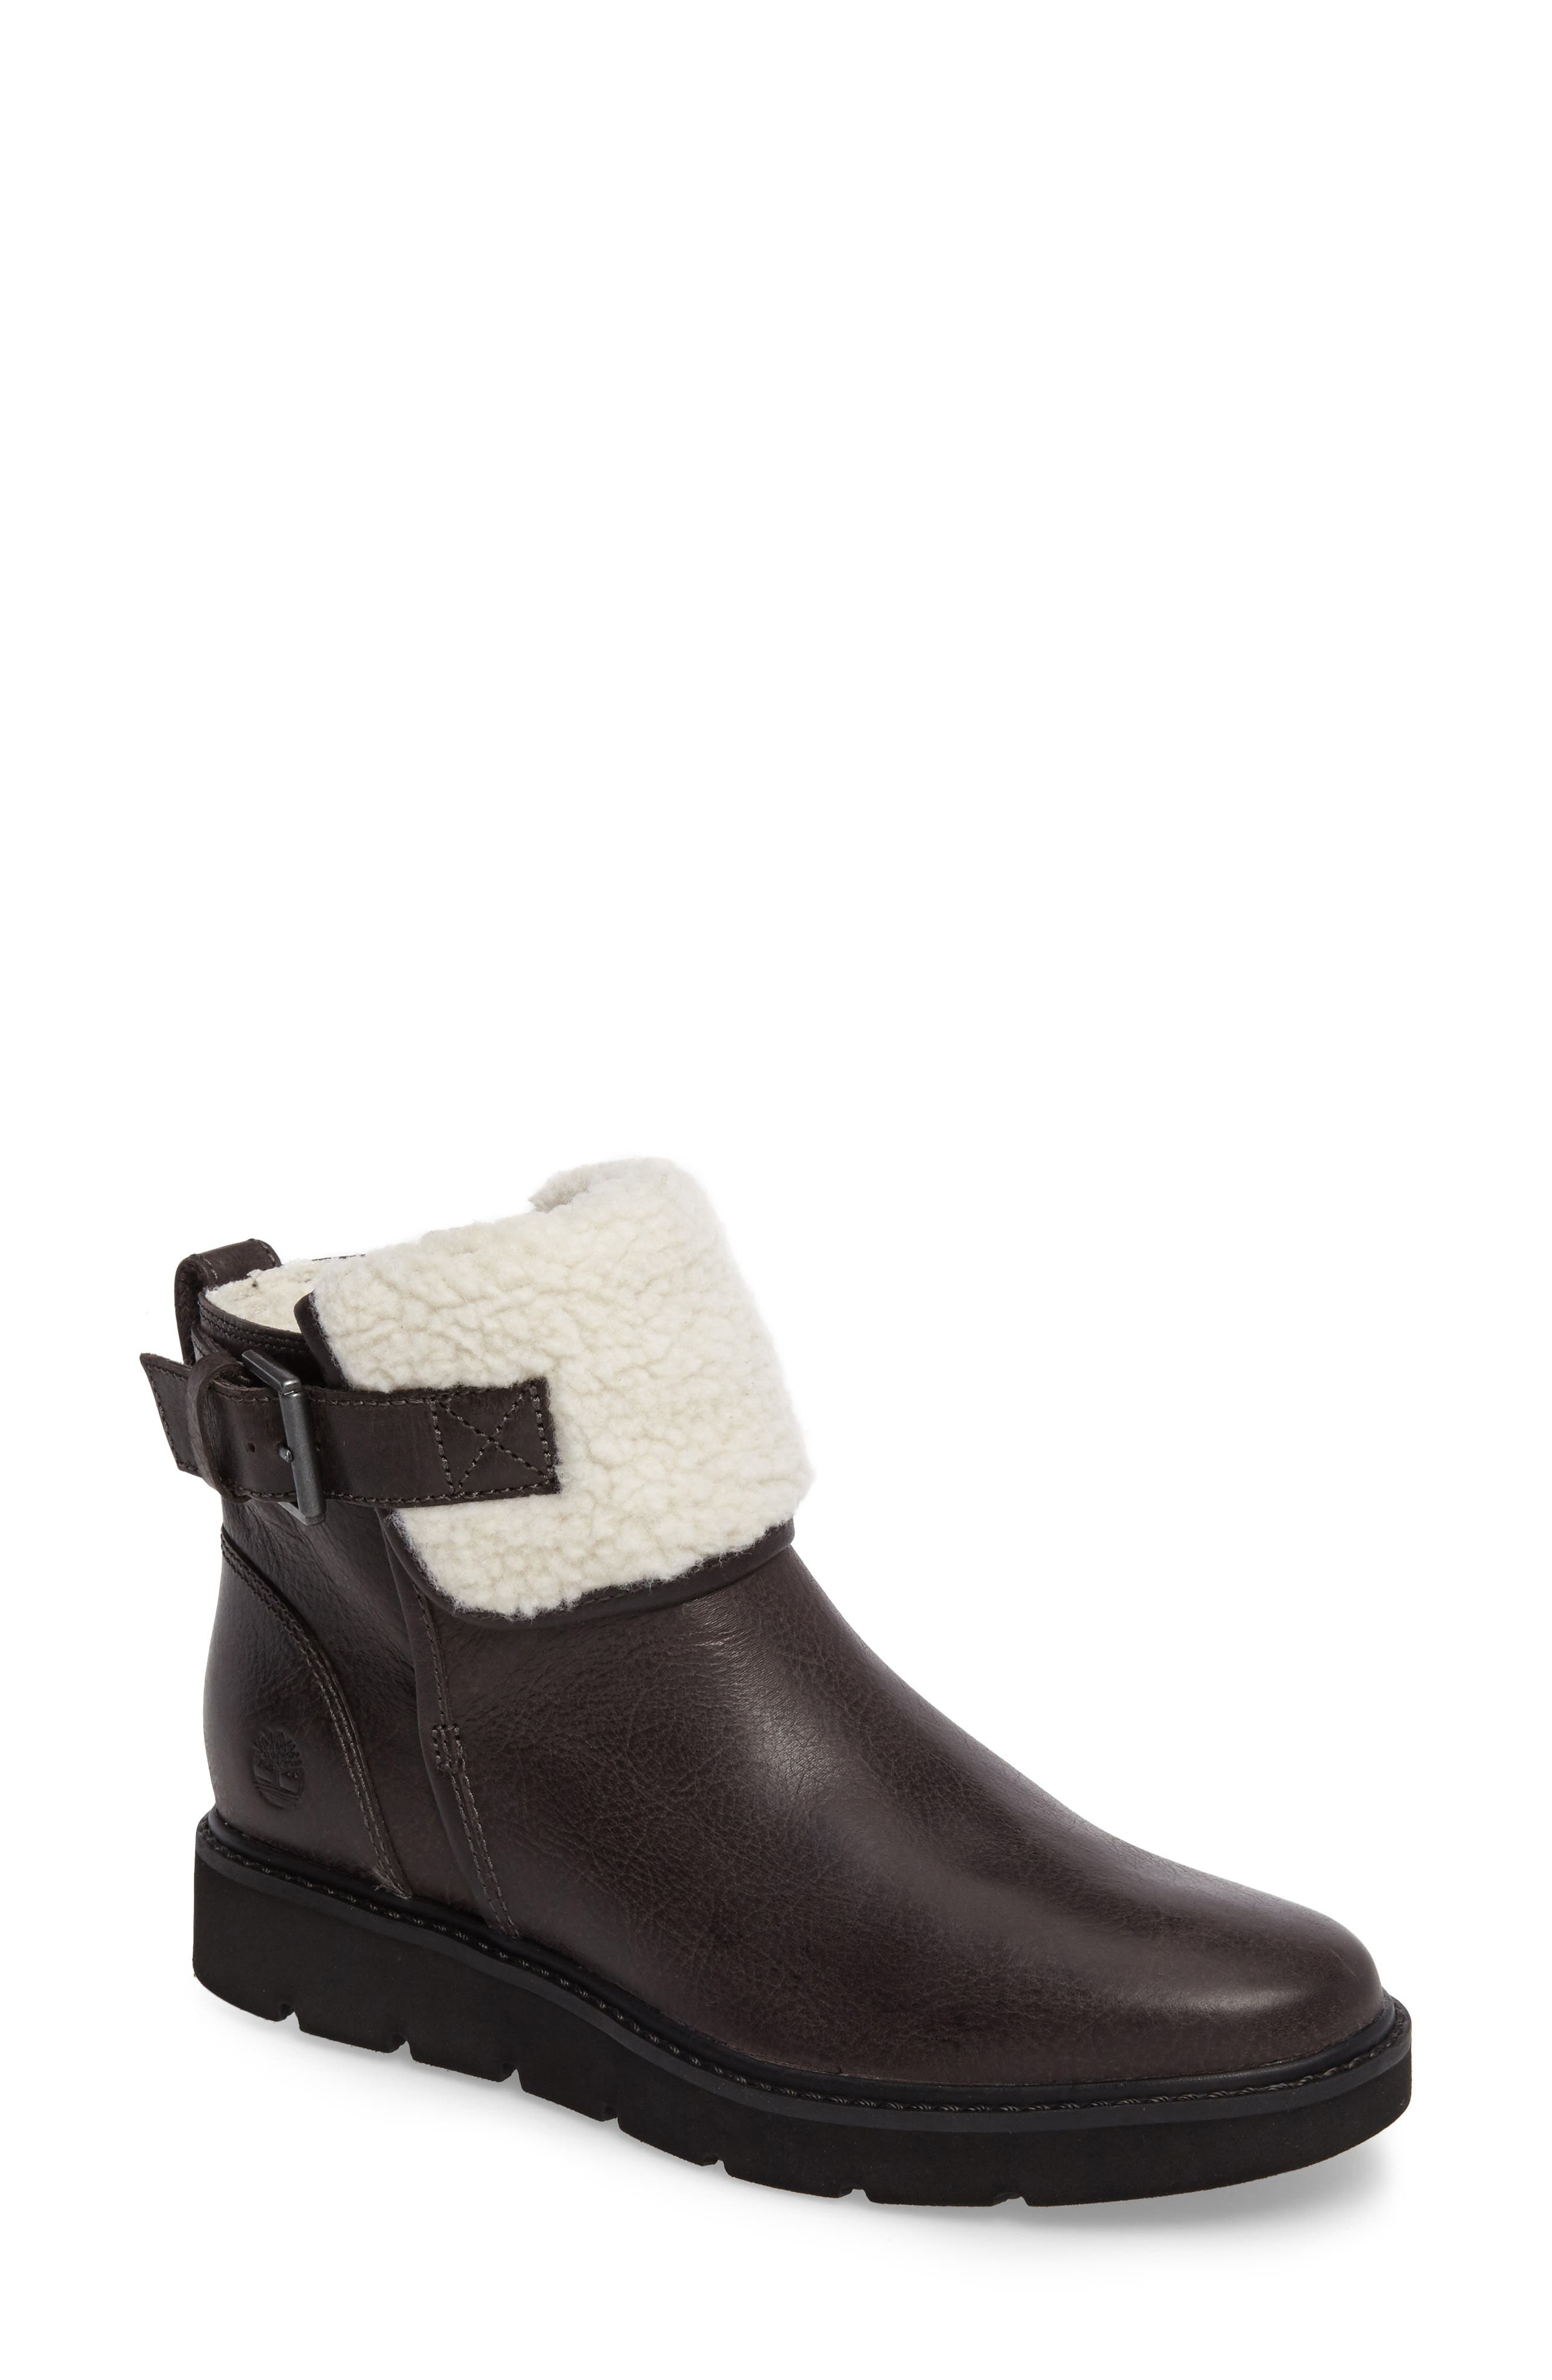 Kenniston Fleece Lined Boot,                         Main,                         color, 021